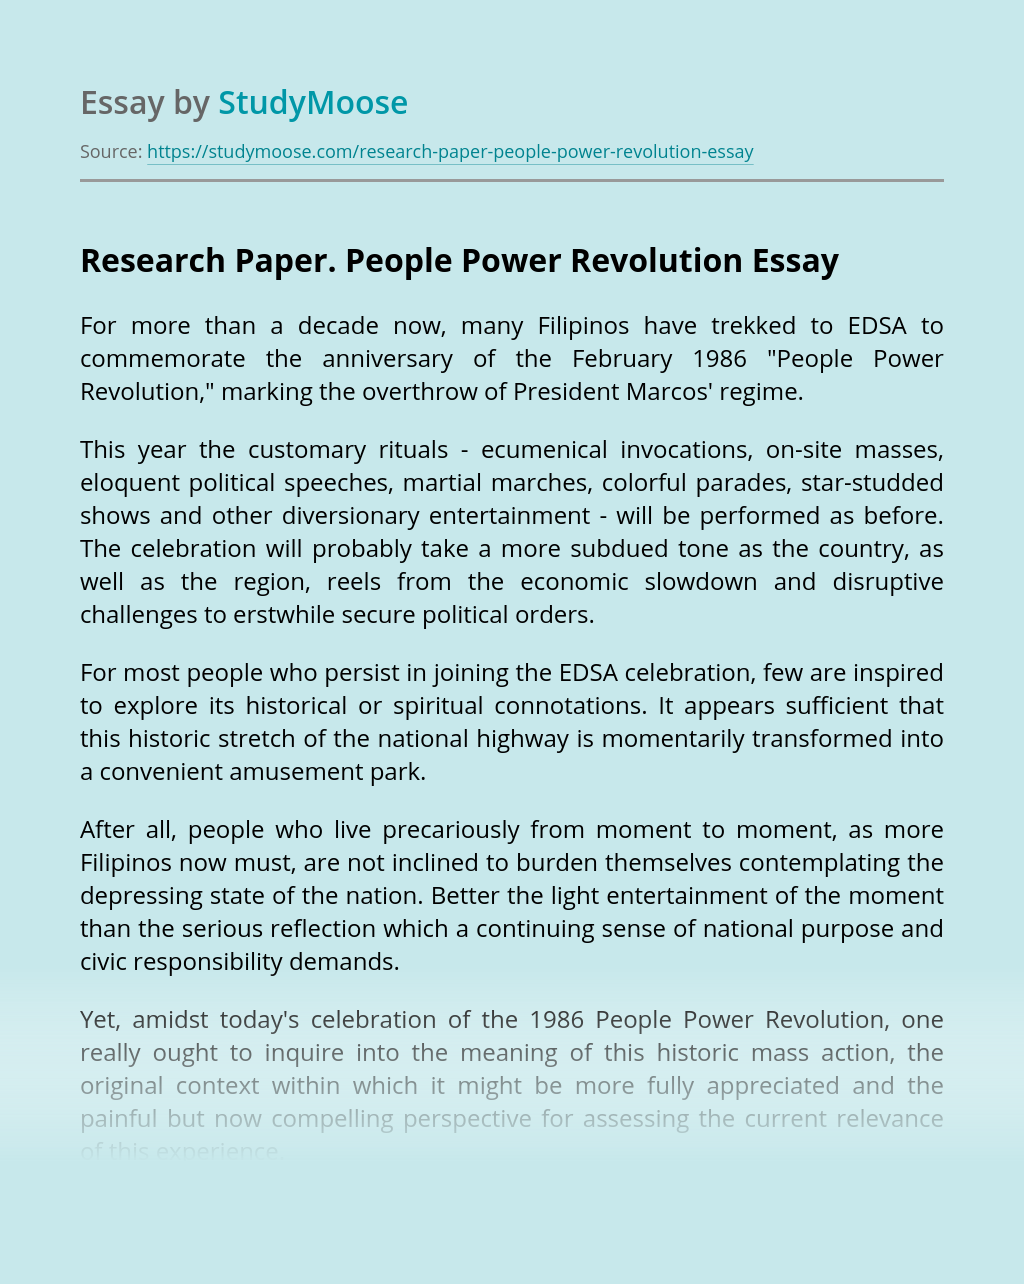 Research Paper. People Power Revolution